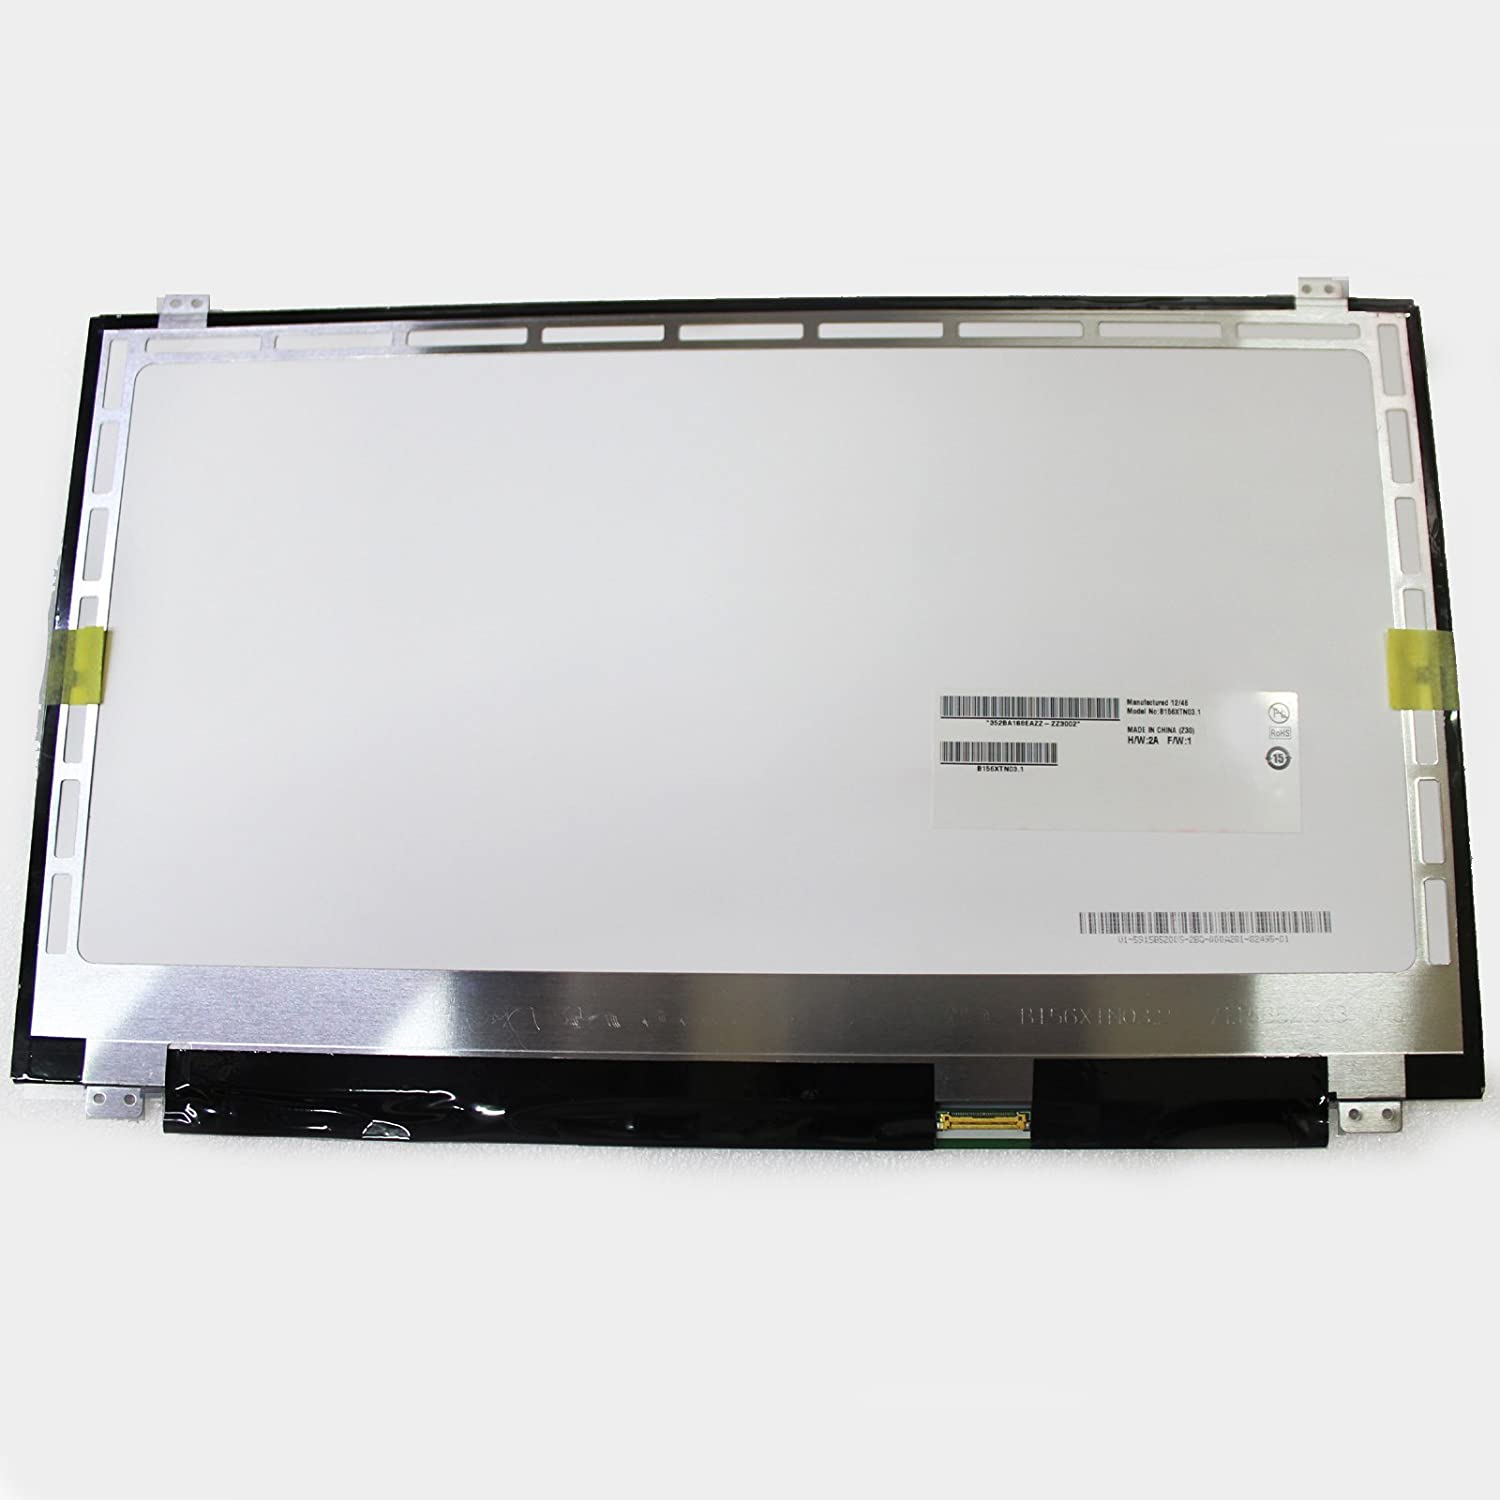 LCDOLED NT156WHM-N12 NT156WHM-N22 NT156WHM-N32 NT156WHM-N42 Laptop 15.6'' LED LCD Screen for Dell Inspiron 3000 Series Display